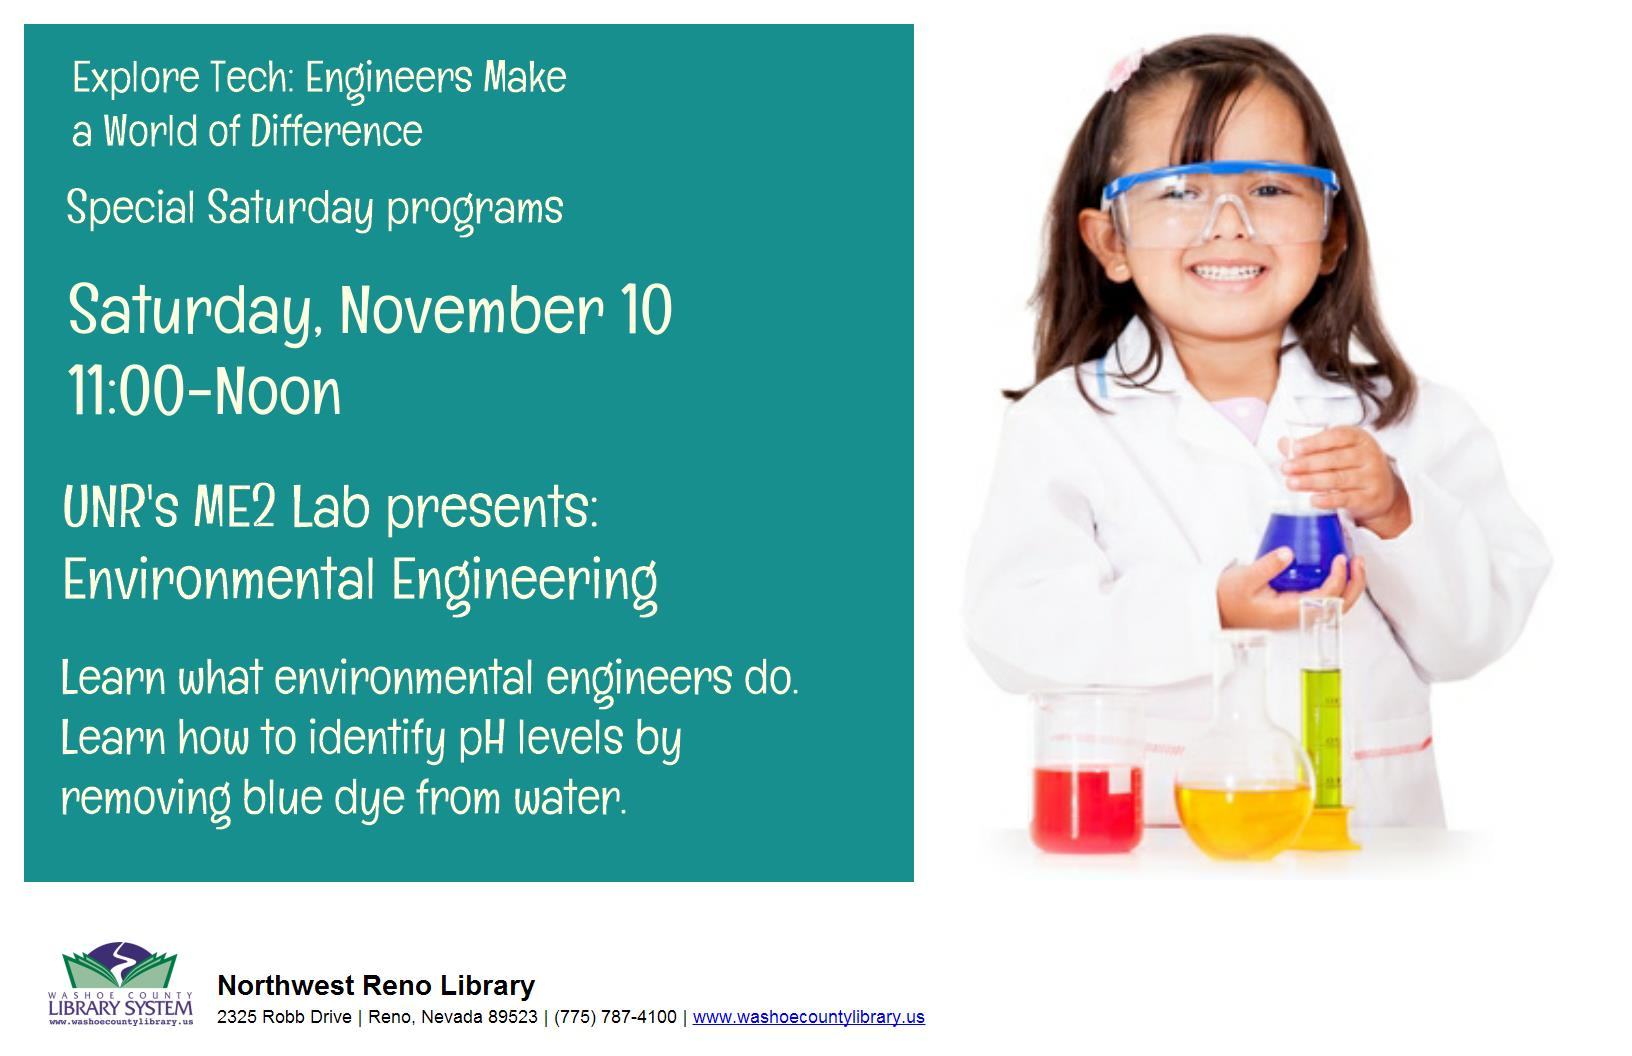 ME2 Lab Presents: Environmental Engineering